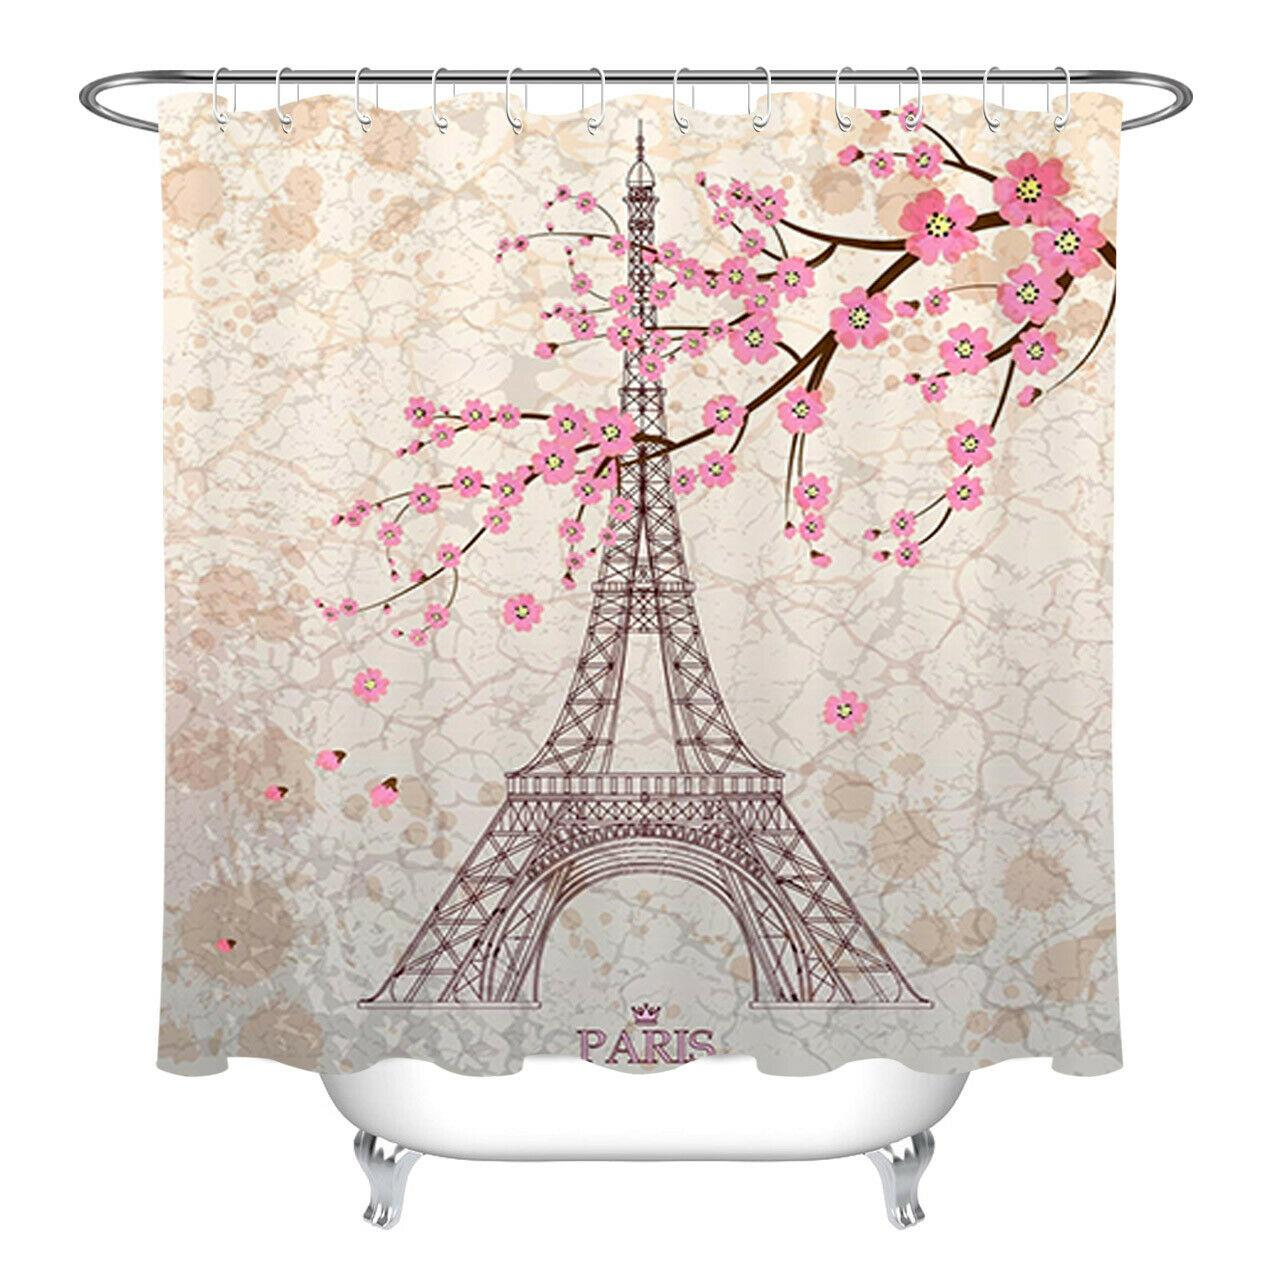 2019 Paris Eiffel Tower Pink Cherry Blossom Shower Curtain Bathroom Durable Fabric Mildew Bathroom Accessories Creative With 12 Hooks 180x180cm From